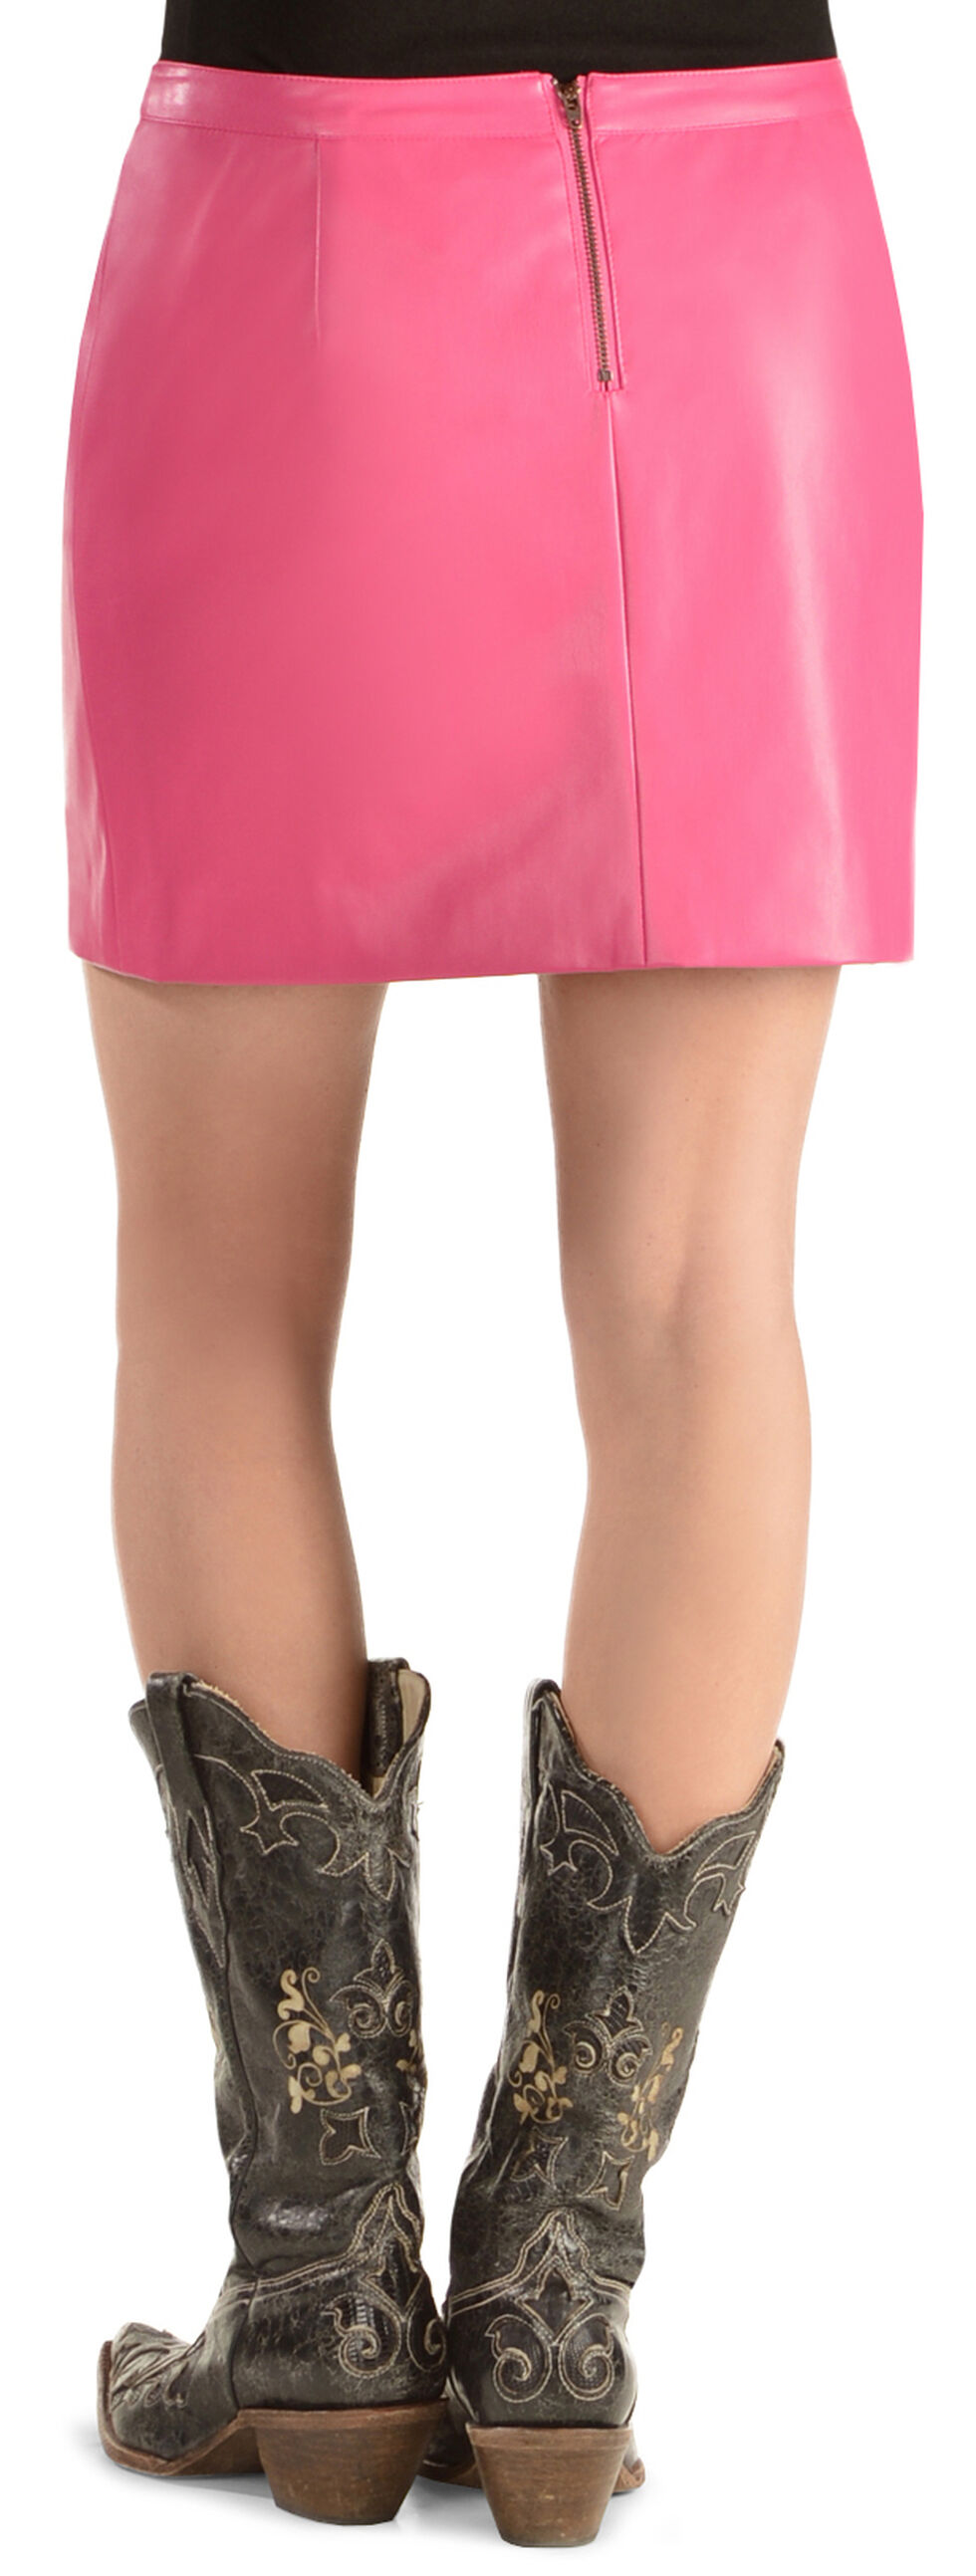 Cowgirl Justice Women's Korey Pink Faux Leather Skirt, Pink, hi-res